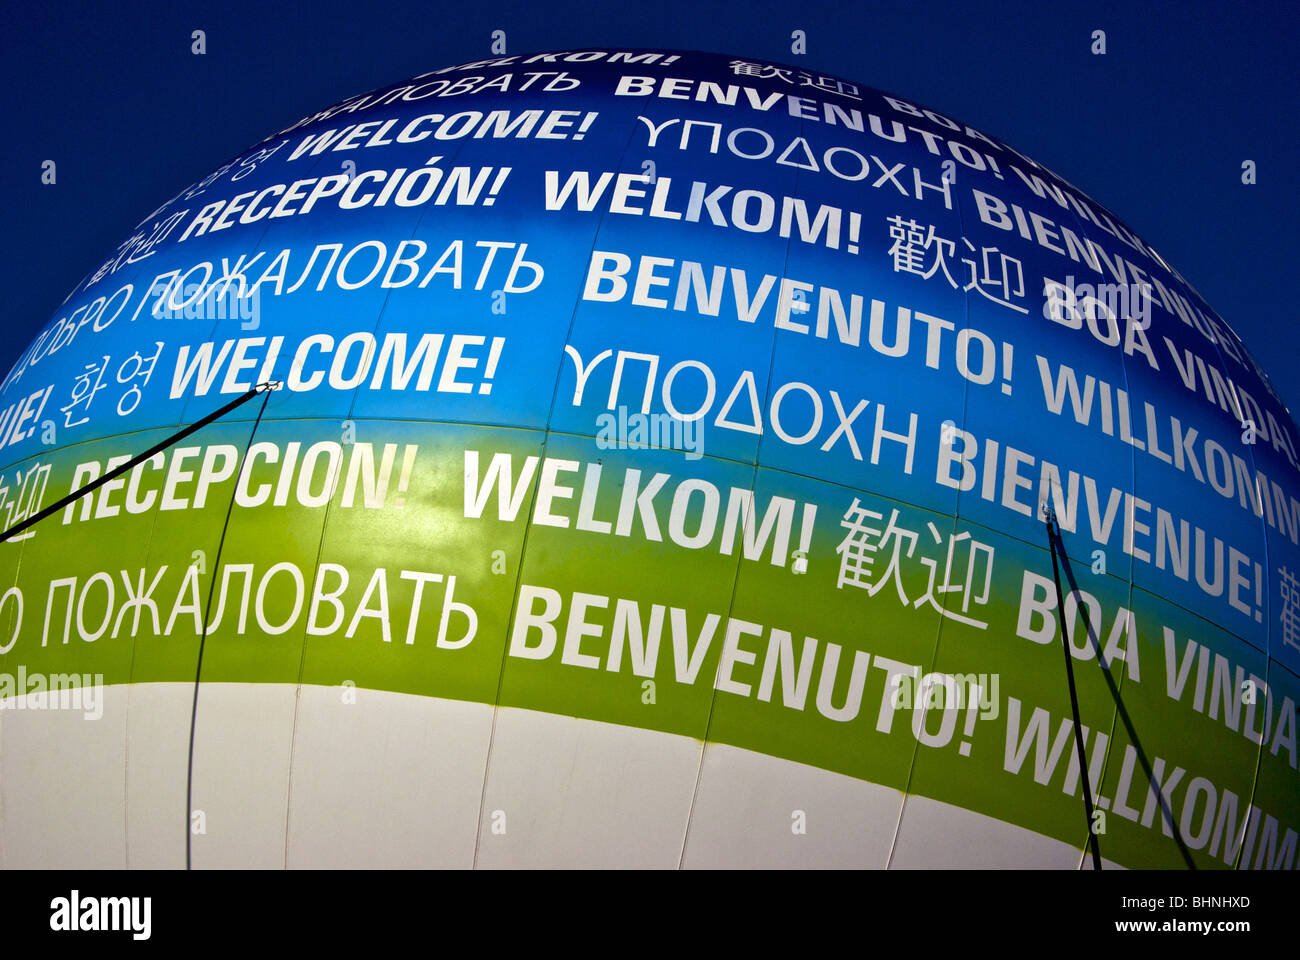 Large helium inflated dome balloon proclaiming welcome to world in many languages for Vancouver 2010 Winter Olympics - Stock Image